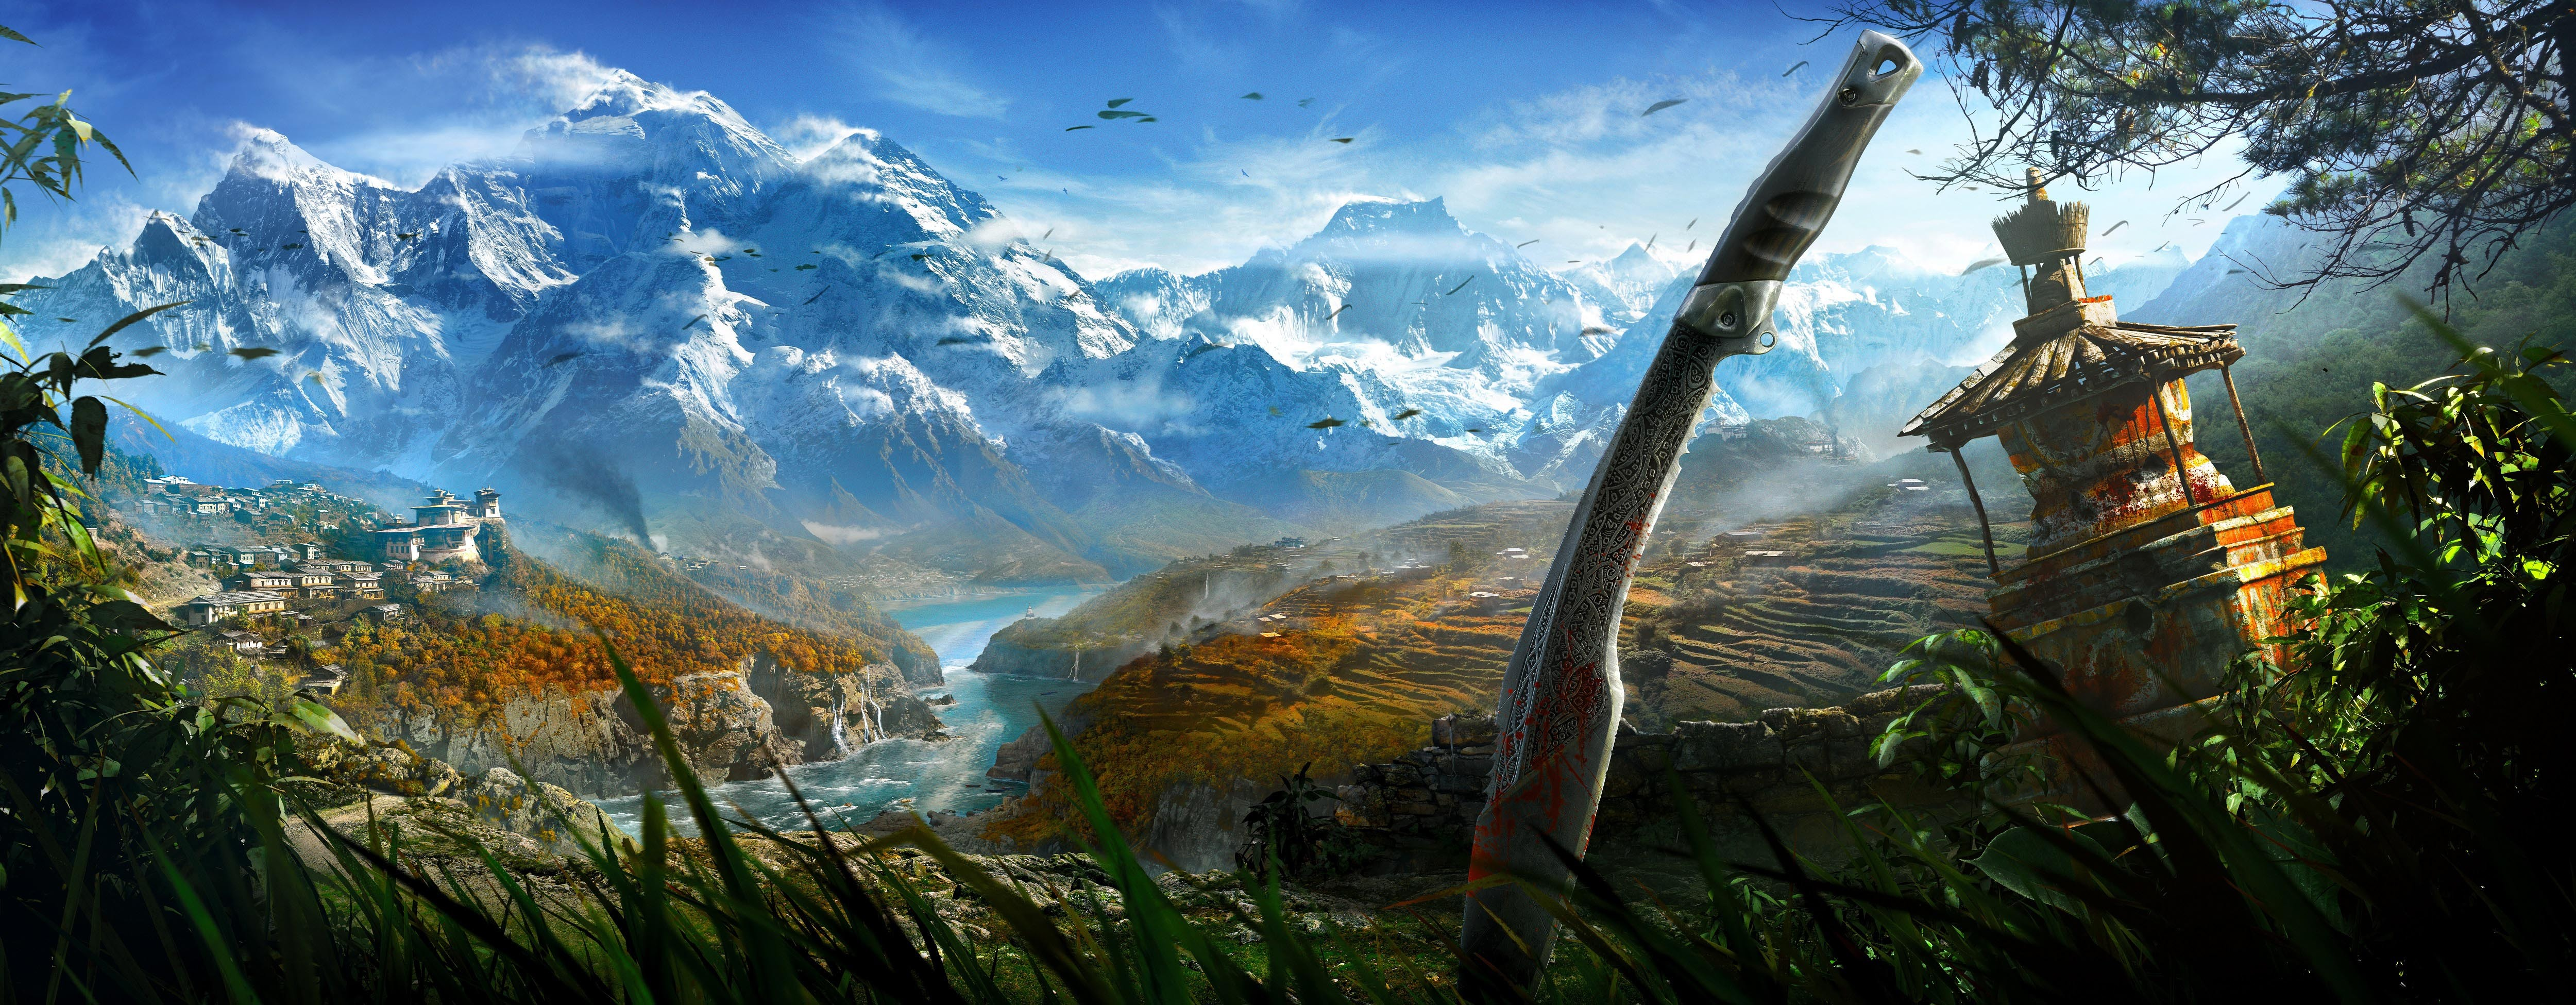 Far Cry 4 Wallpapers - Movie HD Wallpapers  Far Cry 4 Wallpaper Hd